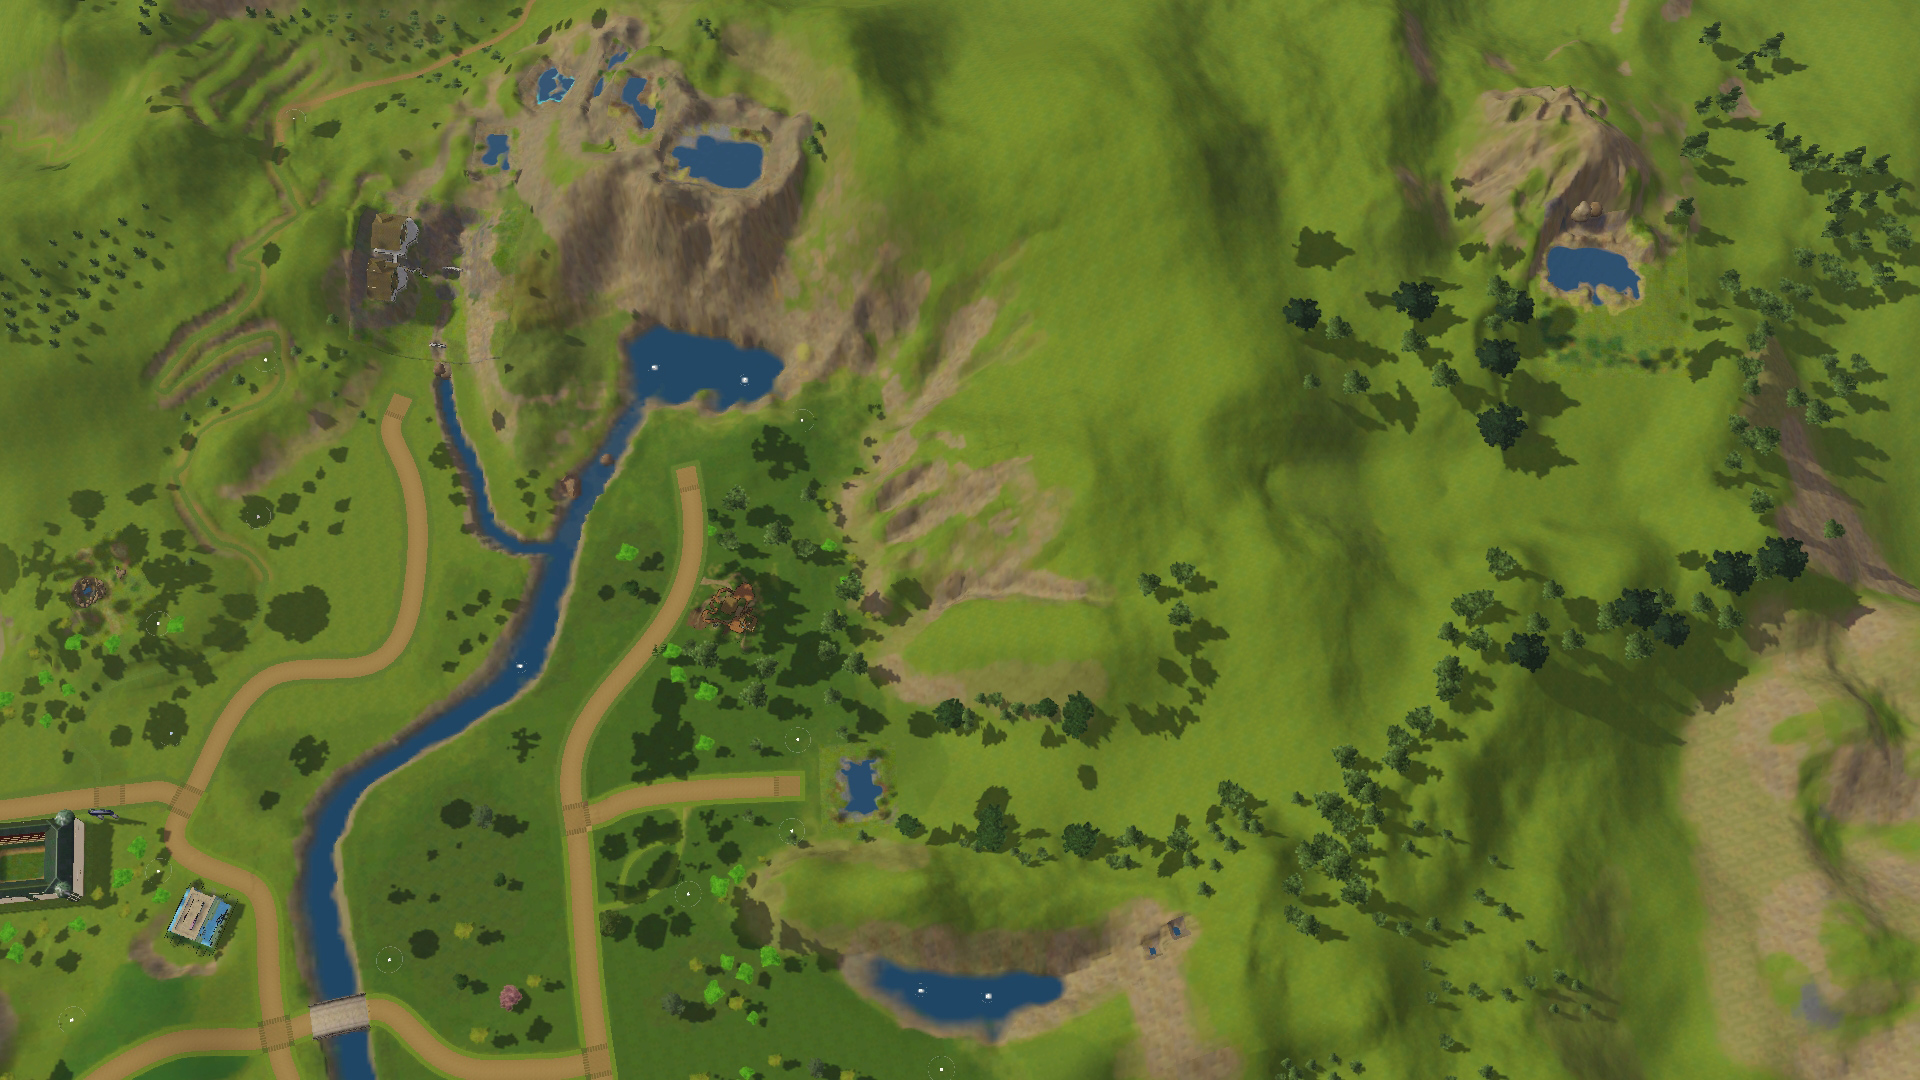 Mod the sims istilnan elven valley slightly different view of the extinct volcano and the other remote hill top fishing place publicscrutiny Gallery